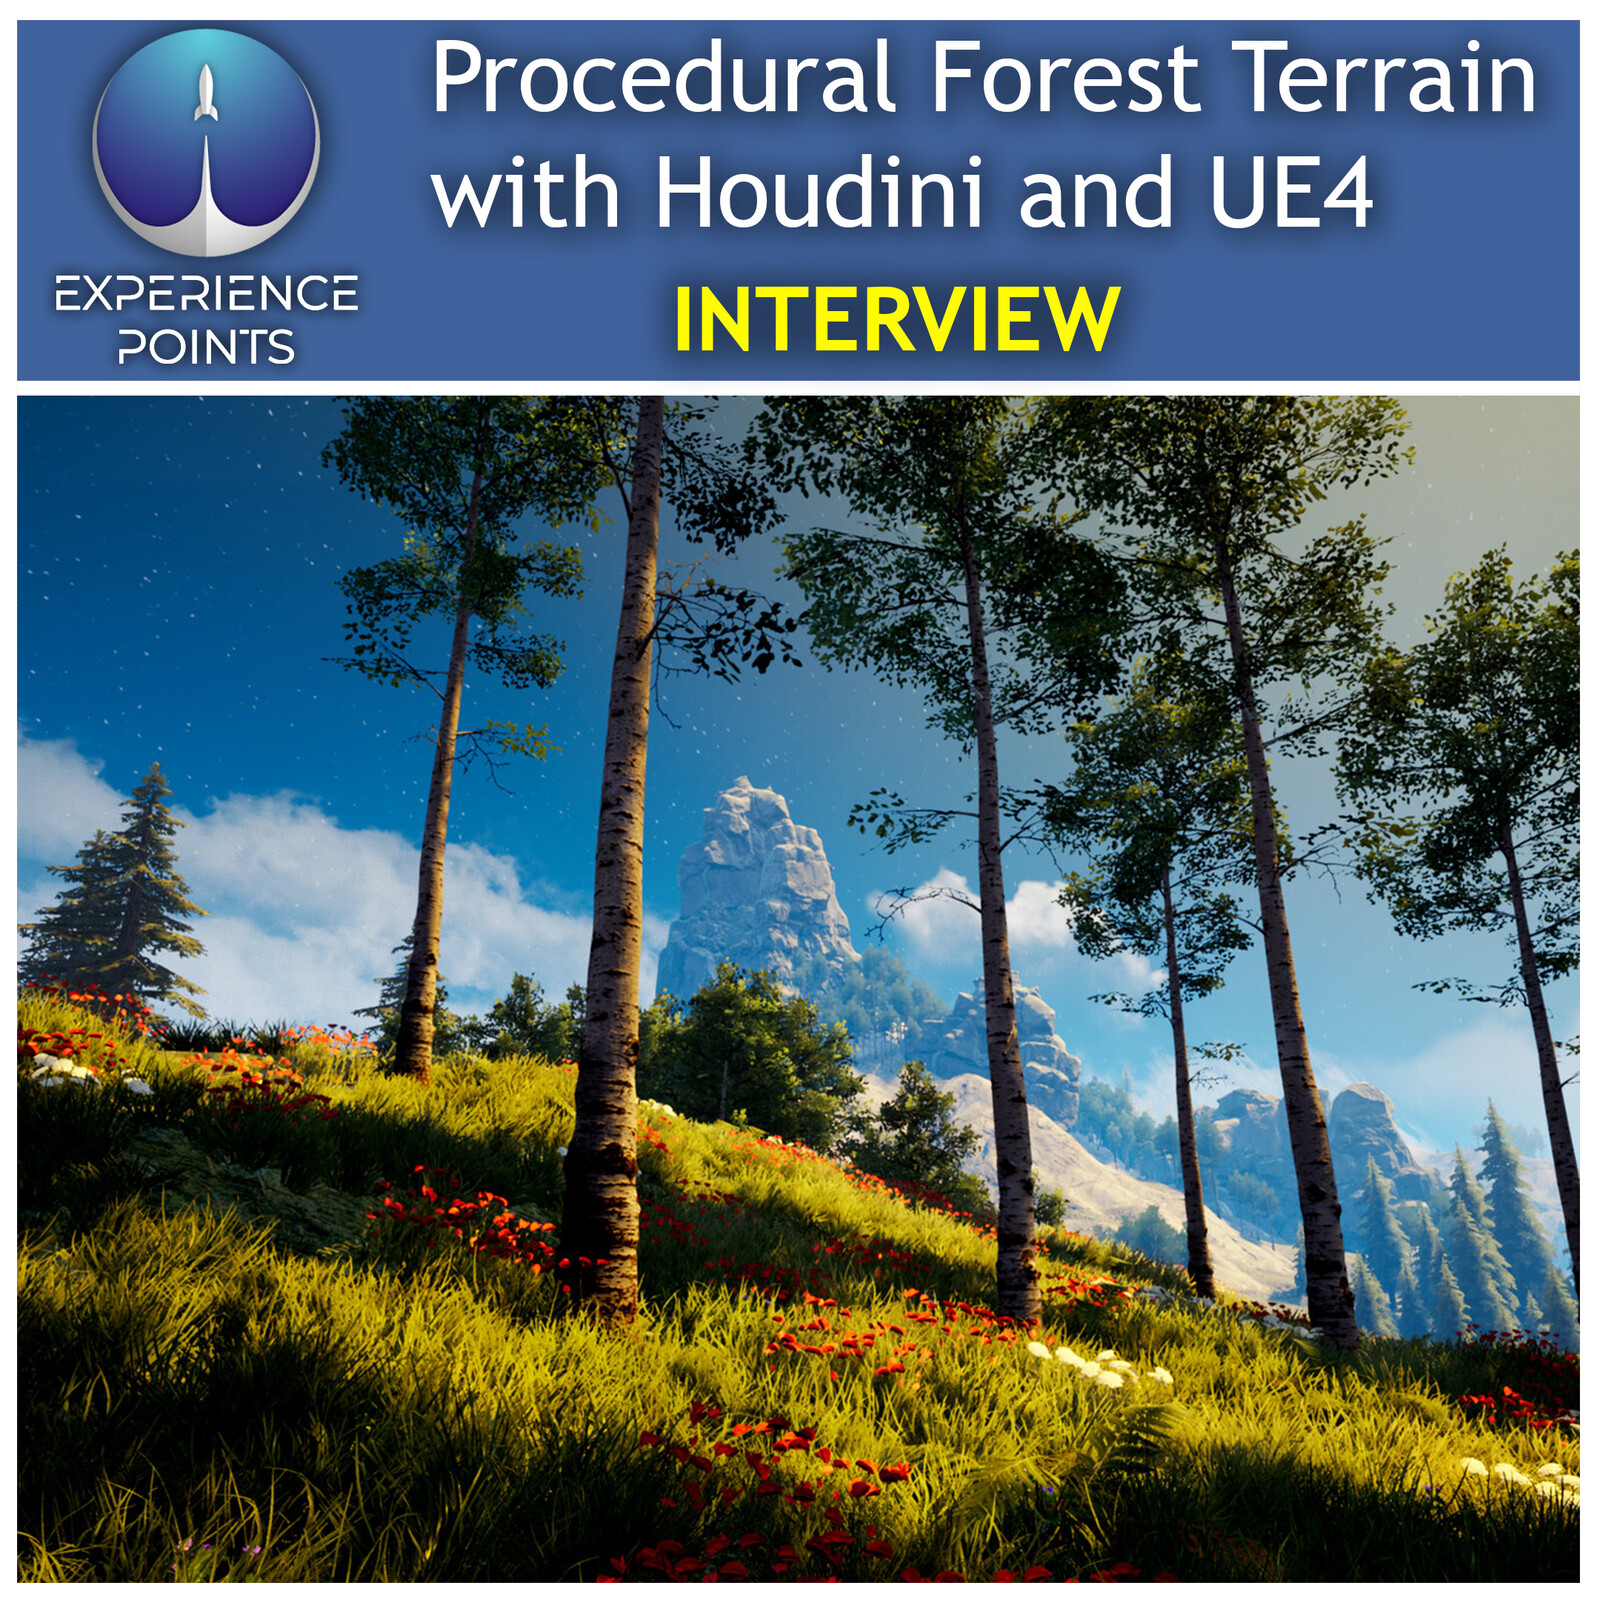 Experience Points Article - Procedural Forest Terrain Production with Houdini and UE4